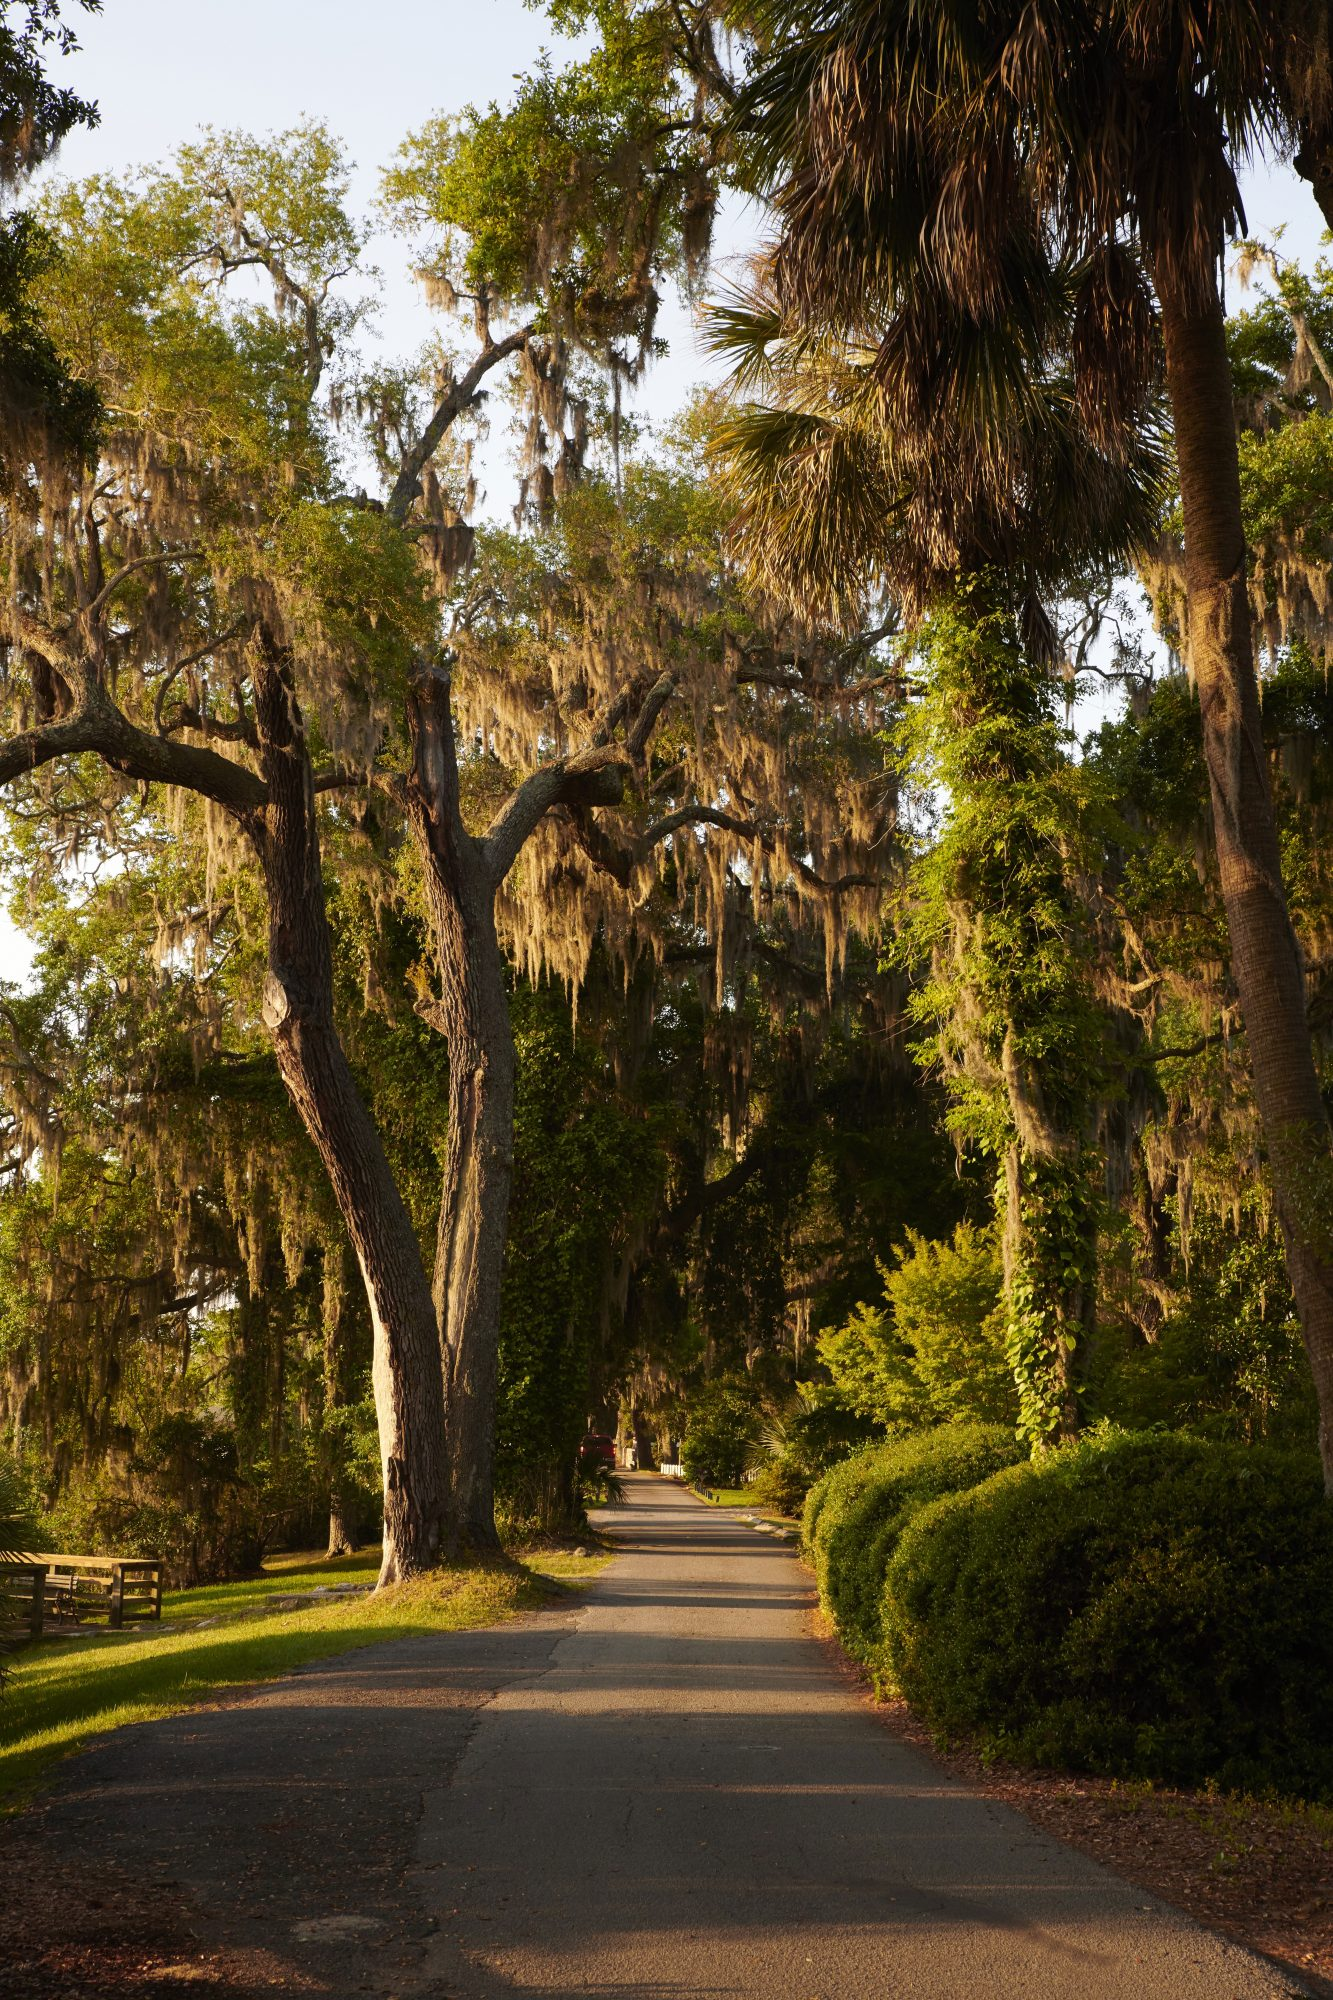 Isle of Hope Trees with Spanish Moss at Sunset